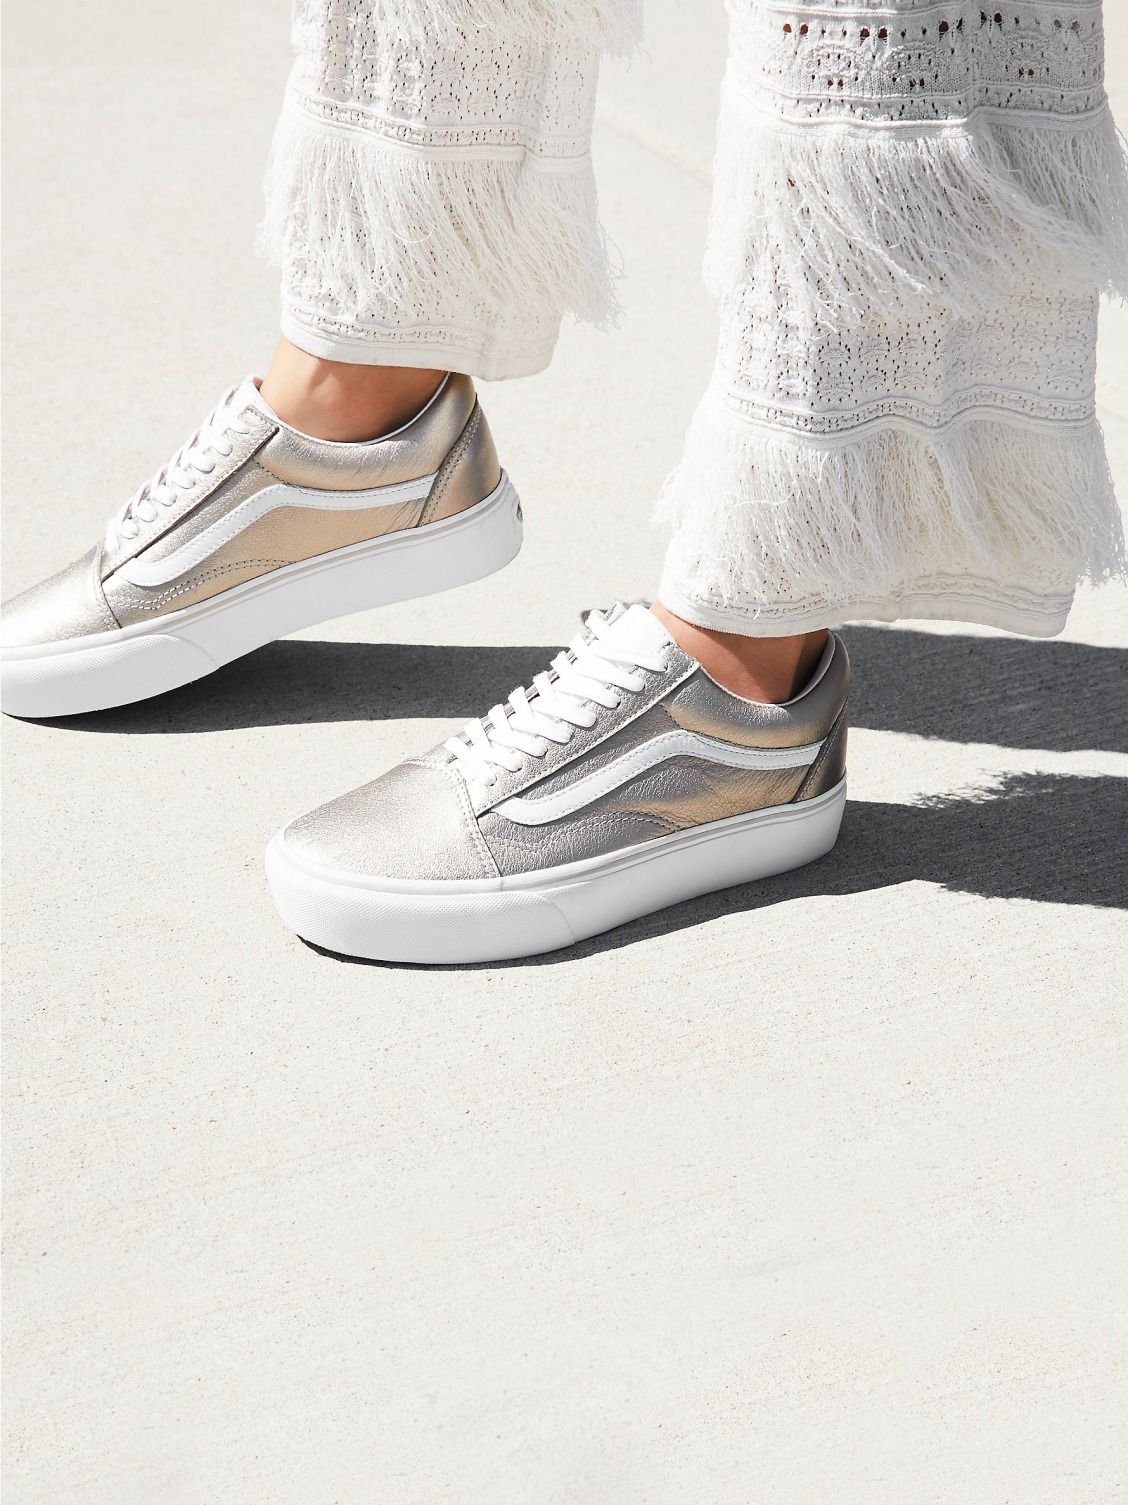 1349bd563b Vans Grey Gold Old Skool Platform Sneaker at Free People Clothing Boutique